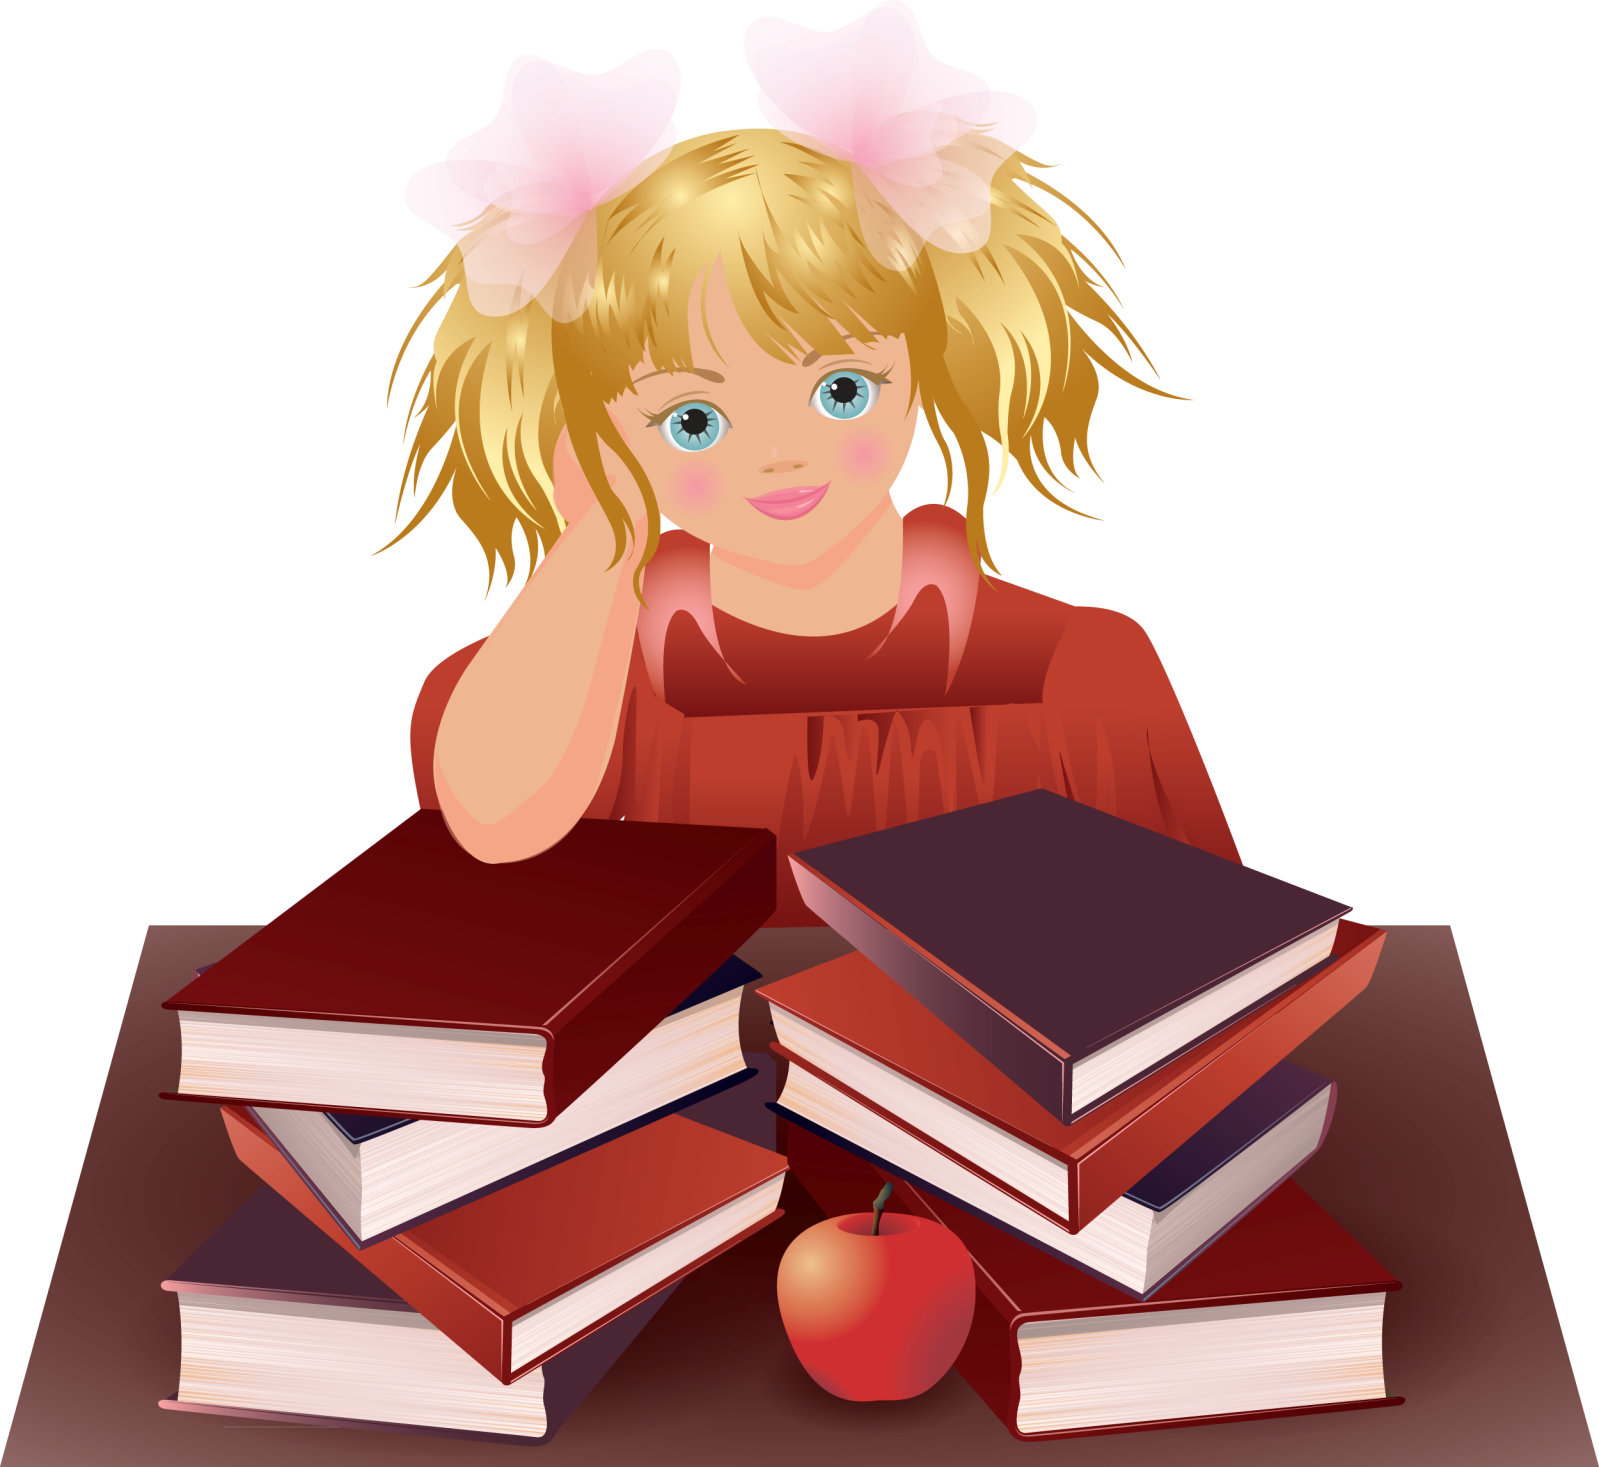 C:\Users\Наталья\Desktop\картинки\children_read_write\19.png